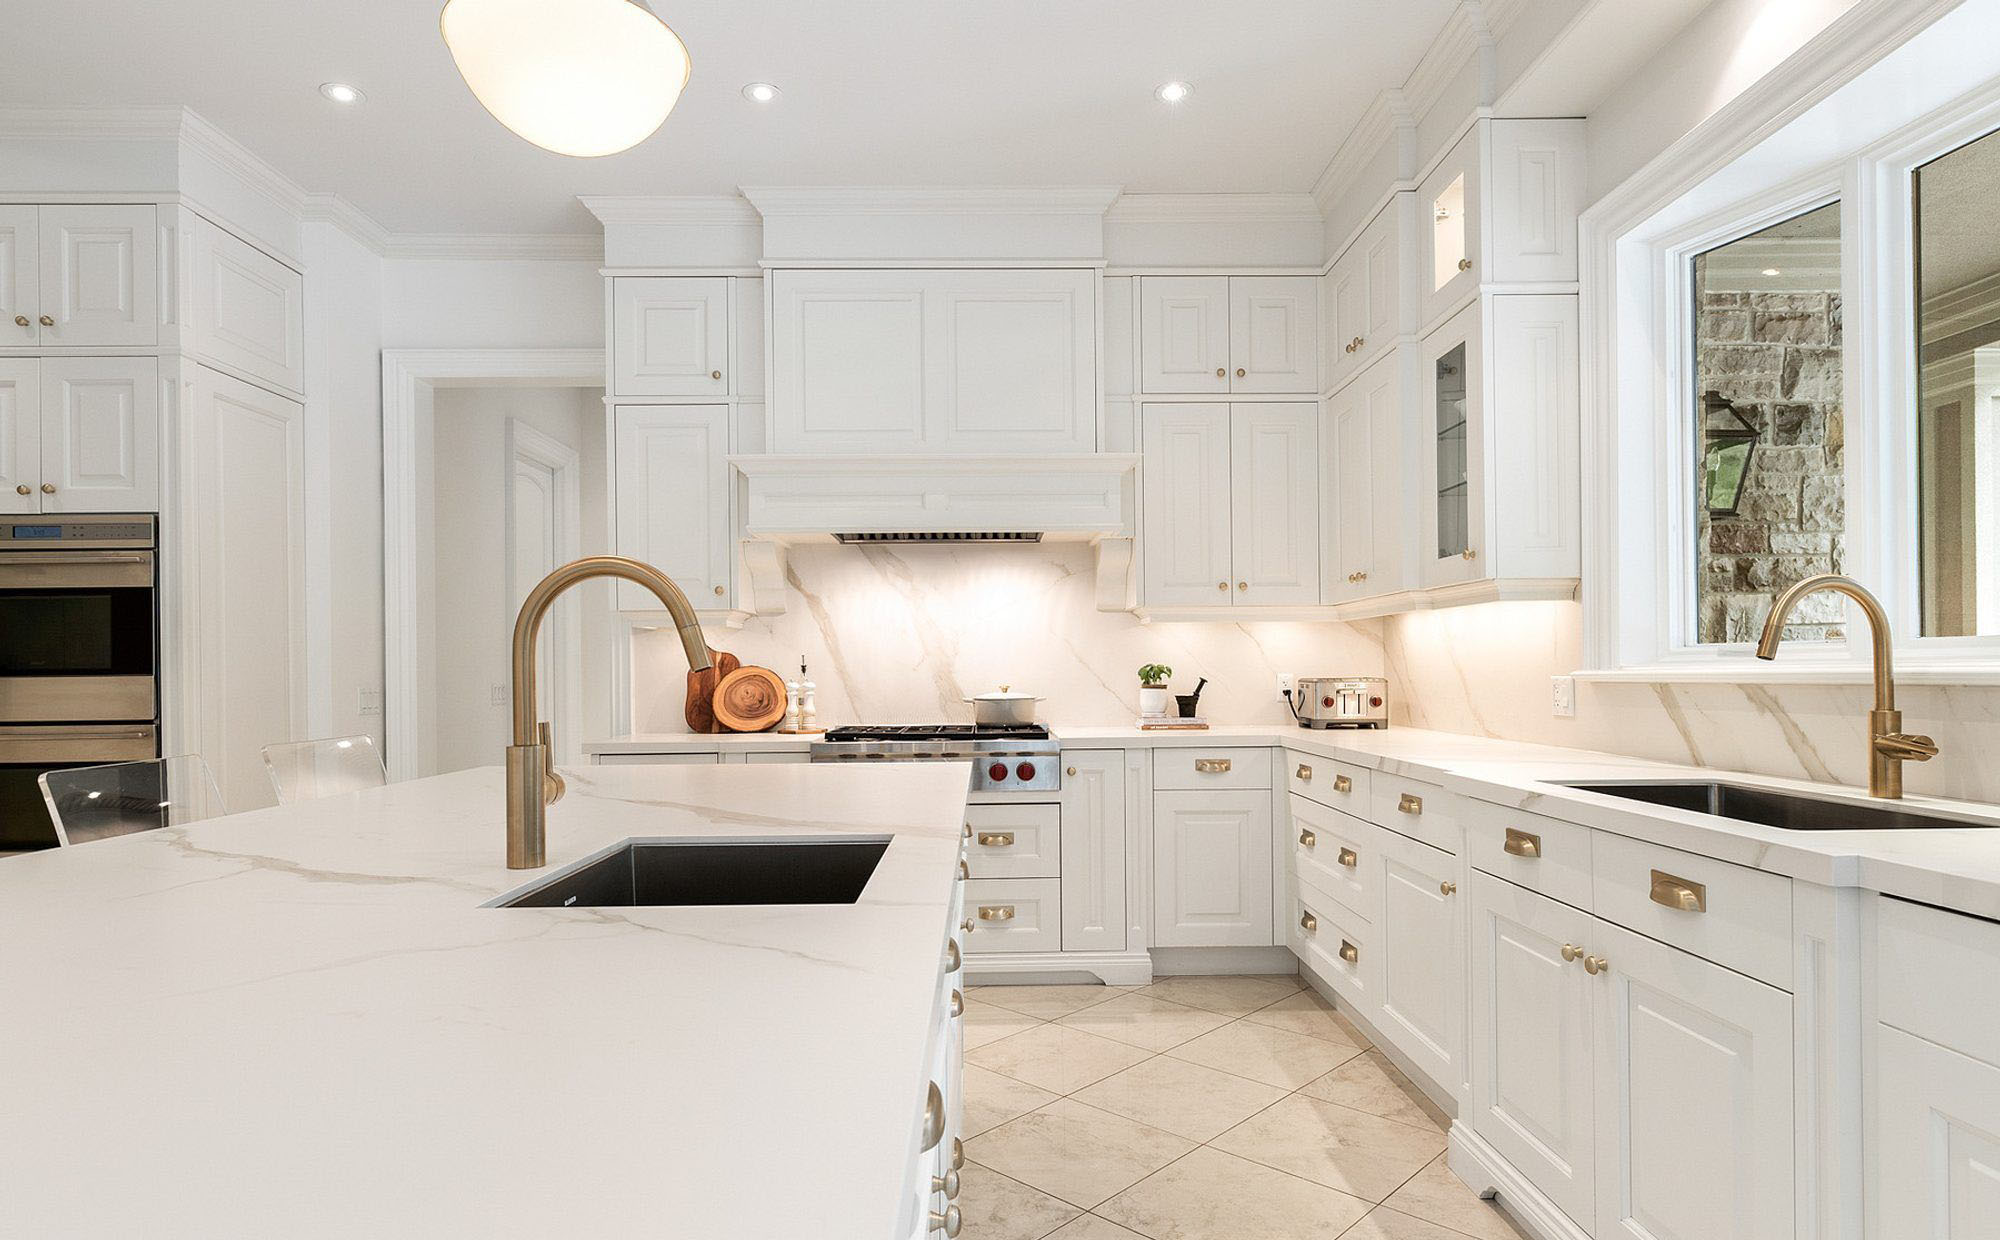 Fantastic luxury kitchen featuring white cabinets, solid slab quartz backsplash with matching counters, and gold hardware.